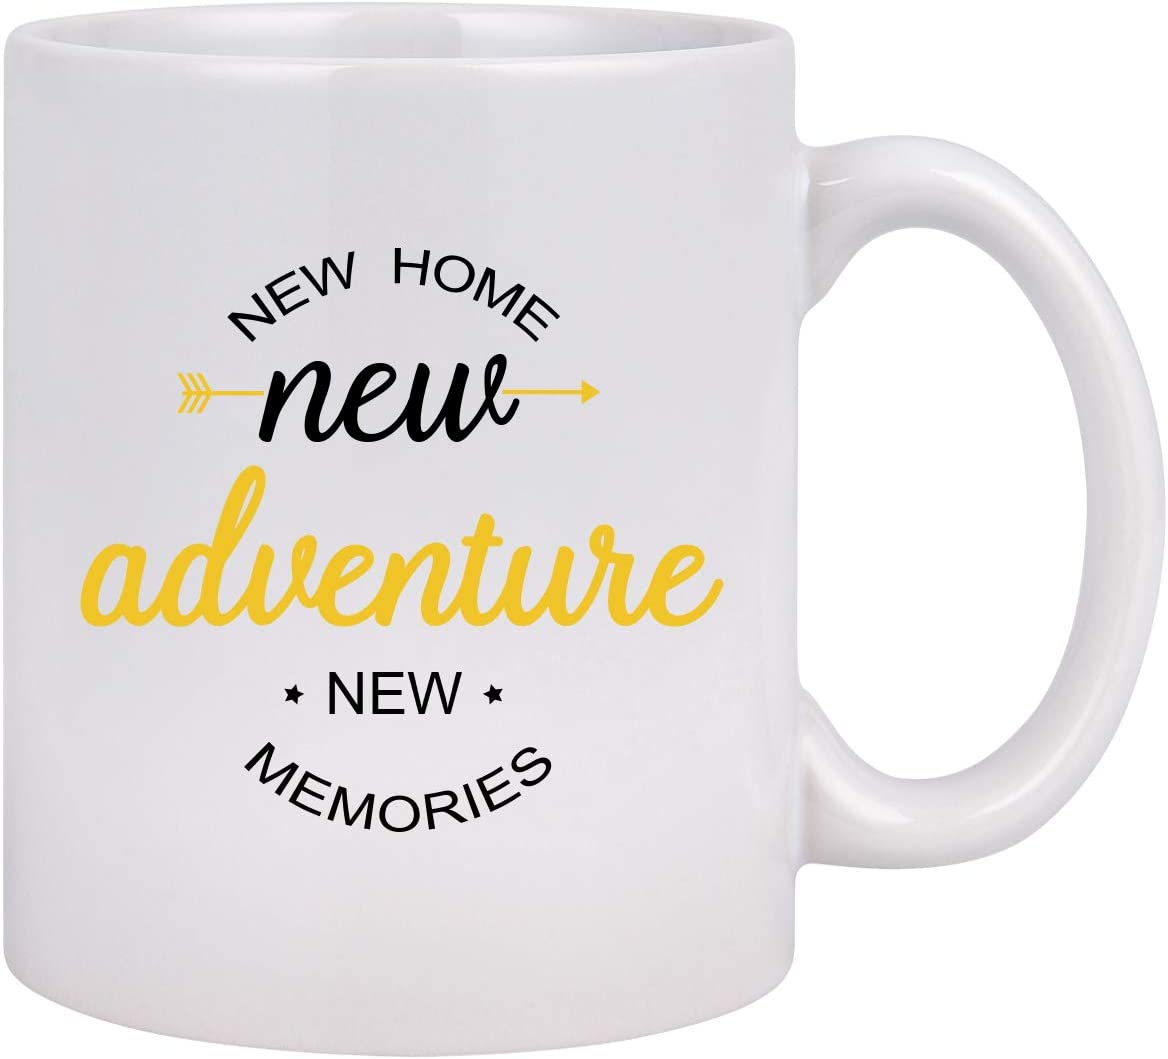 House Warming Gifts - New Home New Adventure New Memories Funny Coffee Mug, New Home Gifts for Friends Parents Relatives Him Her, 11 Oz Ceramic Coffee Mug